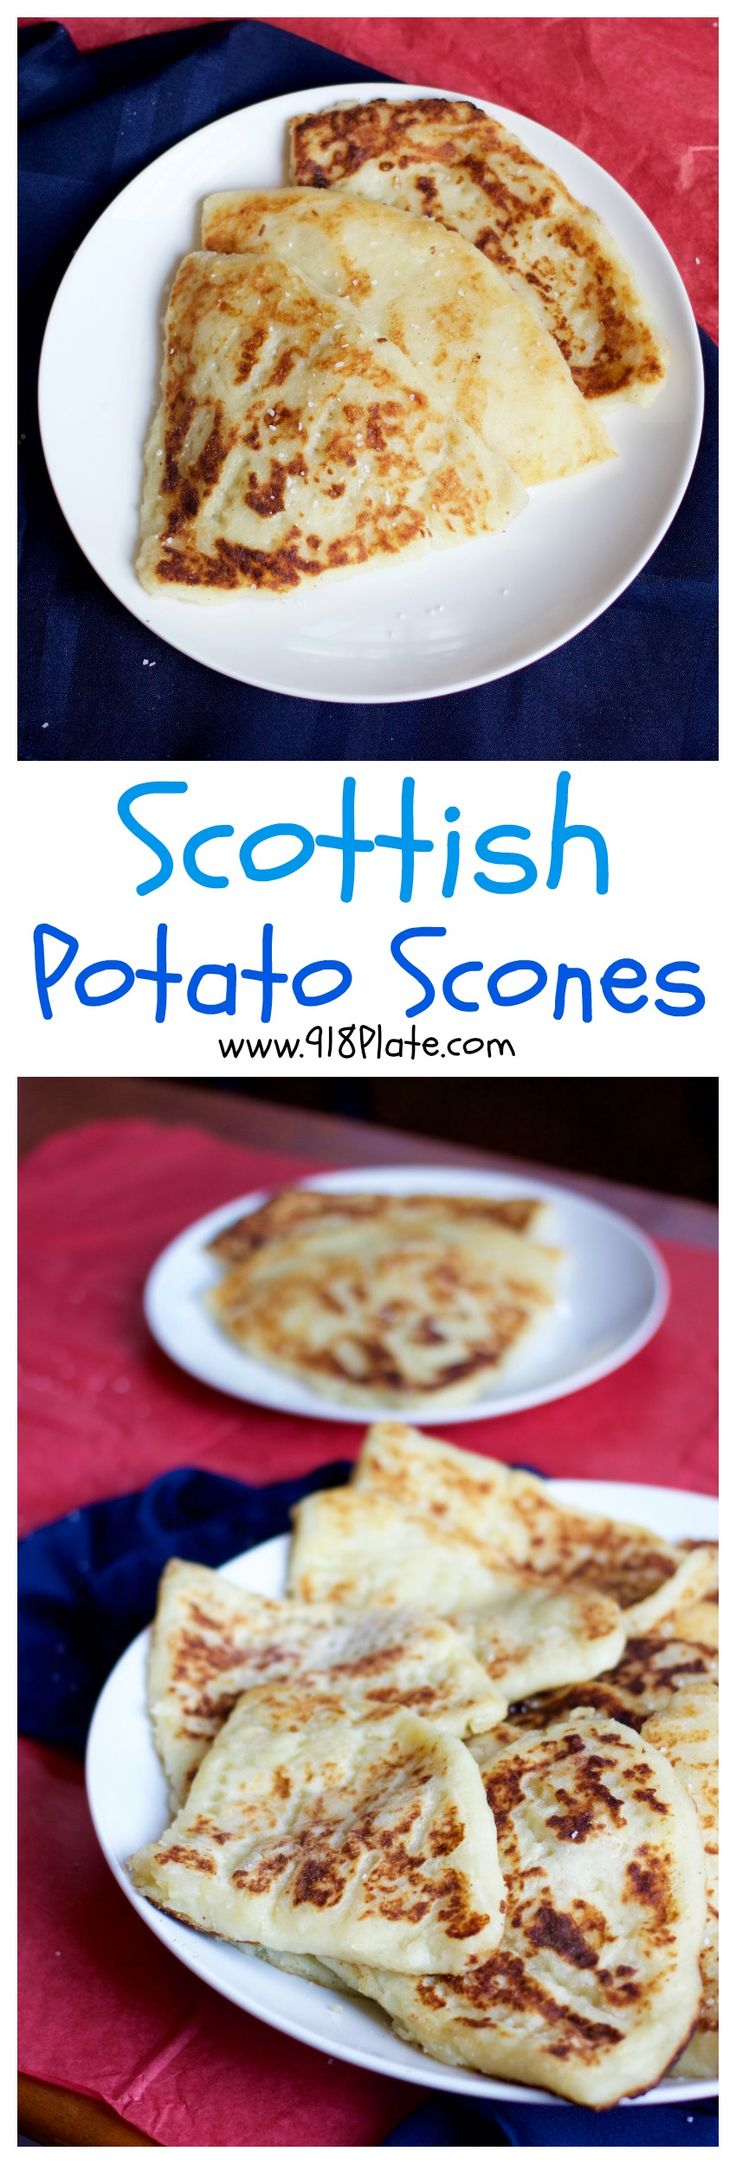 Tattie Scones are the pinnacle of the Scottish breakfast that set it apart from the rest! #breakfast #brunch